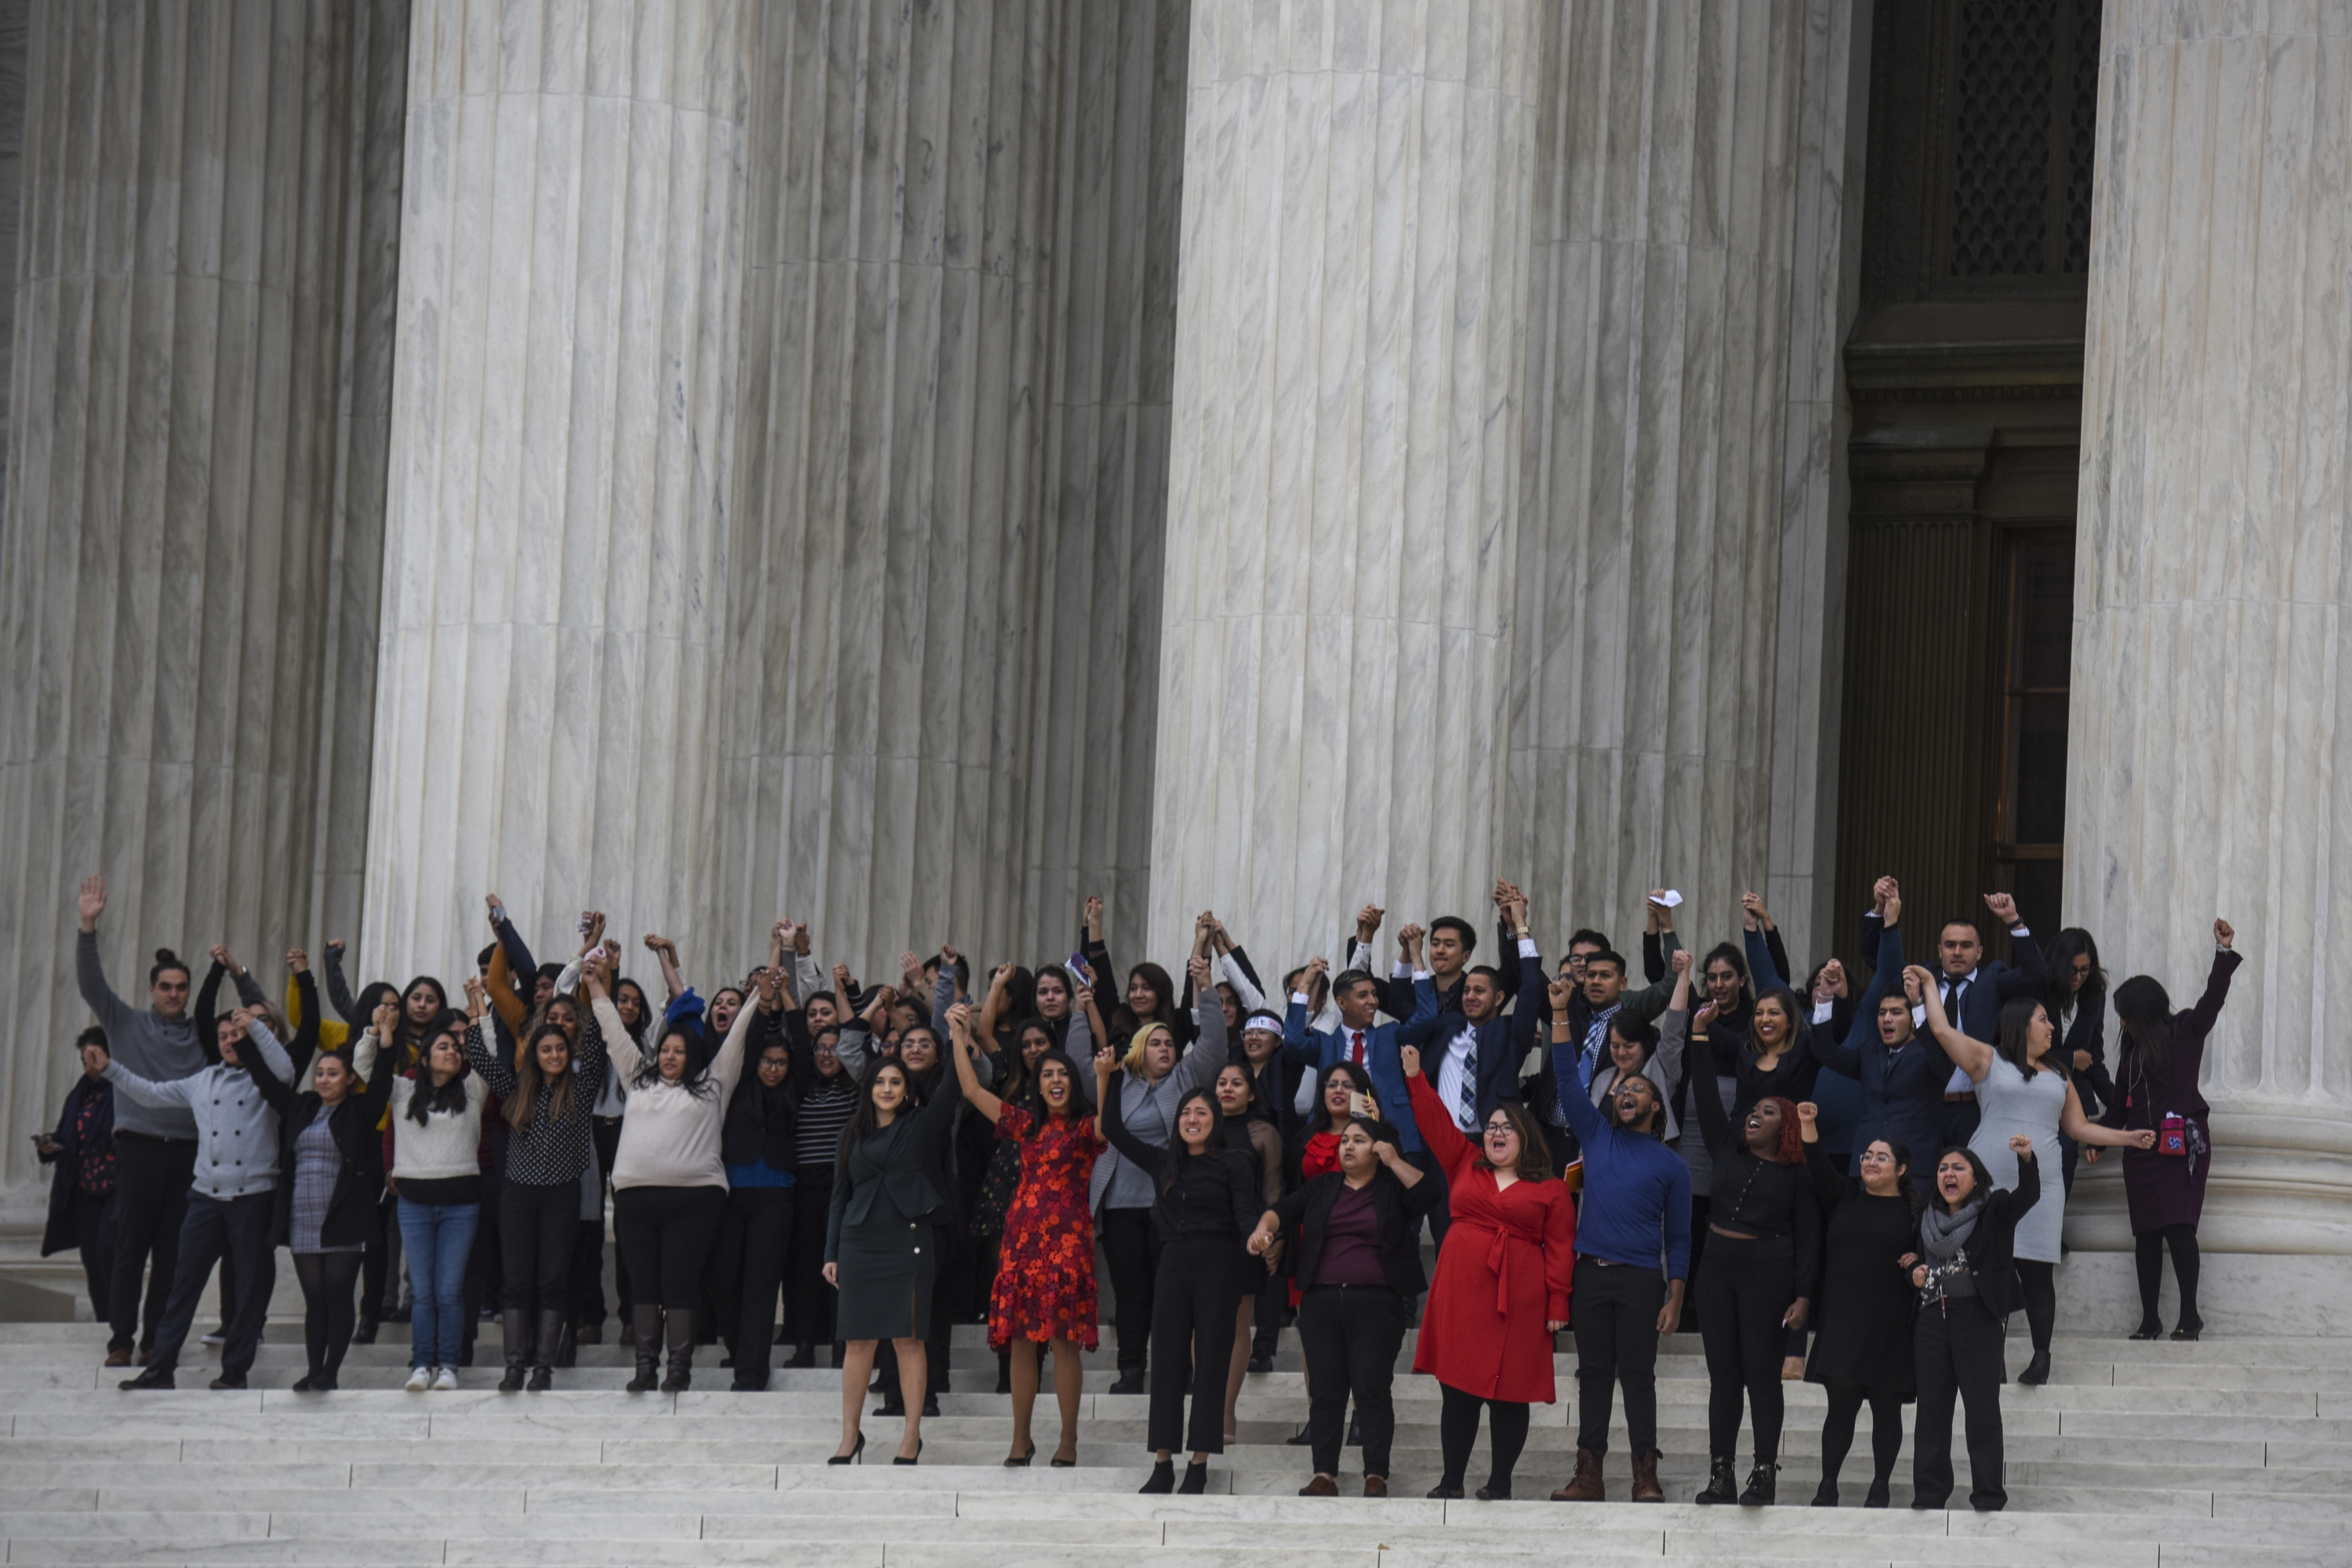 DACA plaintiffs leave the United States Supreme Court, where the Court is hearing arguments on Deferred Action for Childhood Arrivals that could impact the fates of nearly 700,000 young immigrants.  on Nov. 12, 2019, in Washington, D.C.